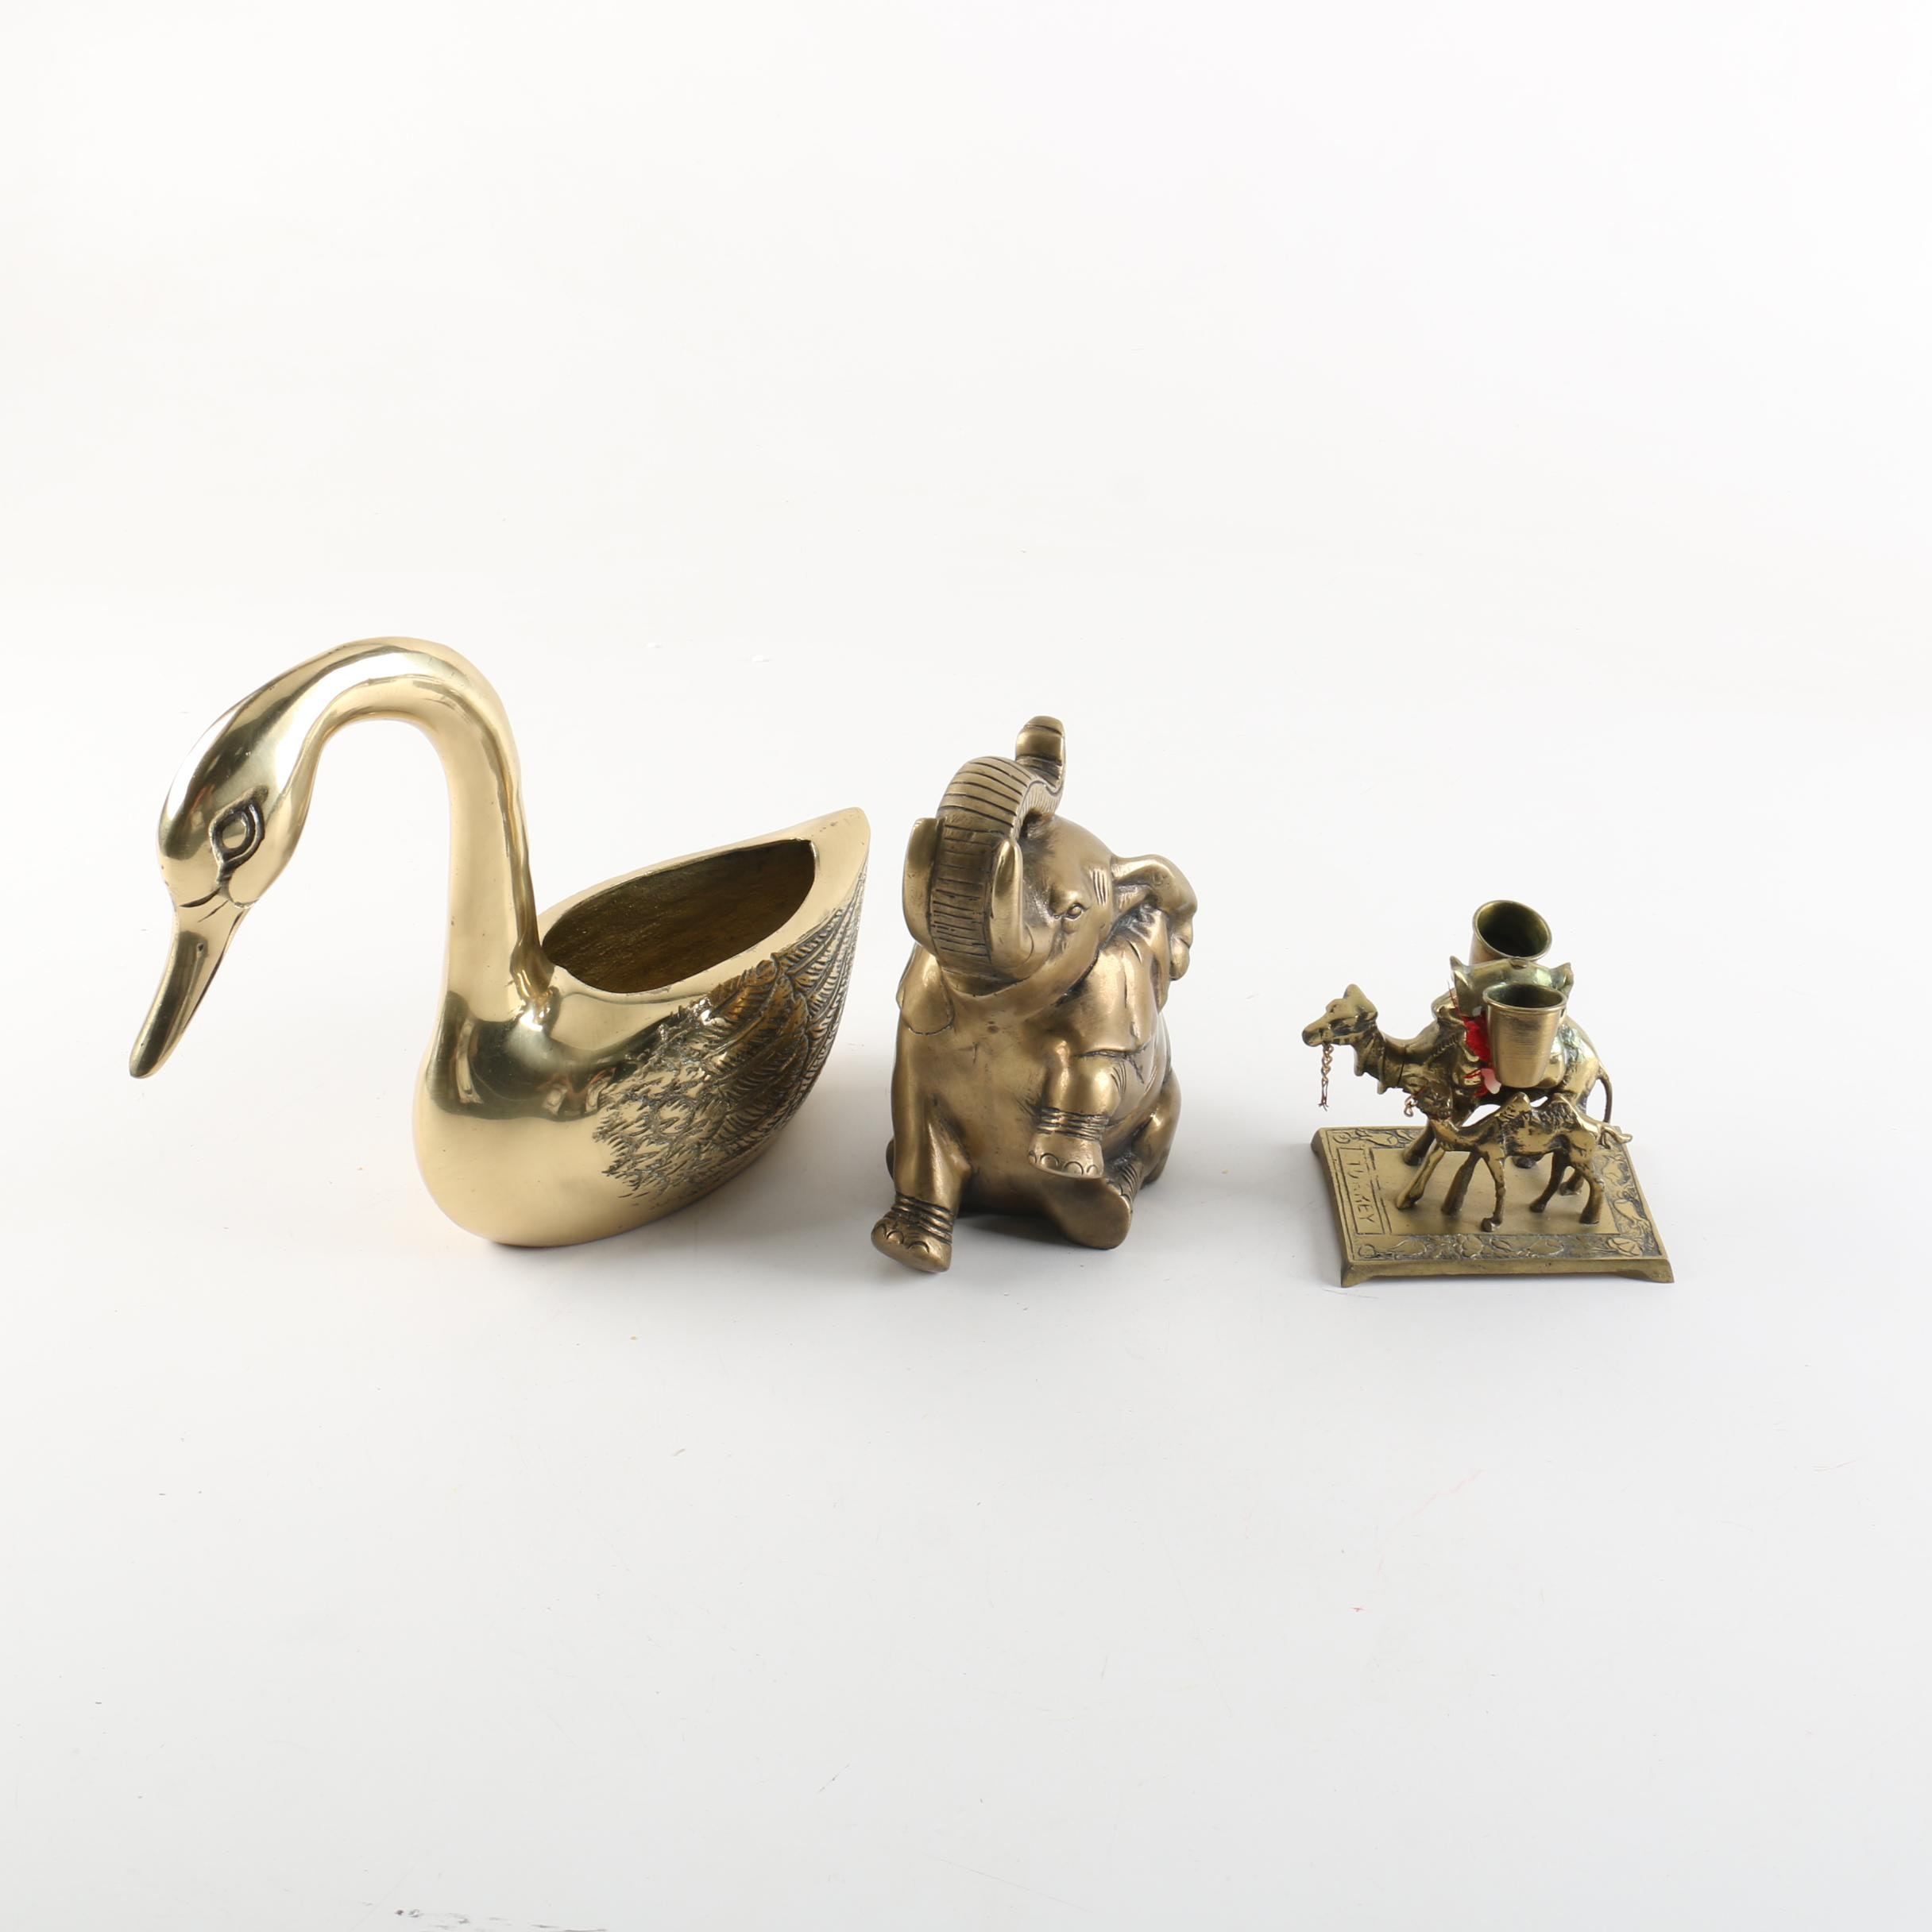 Brass Swan, Elephant, and Camel Figurines